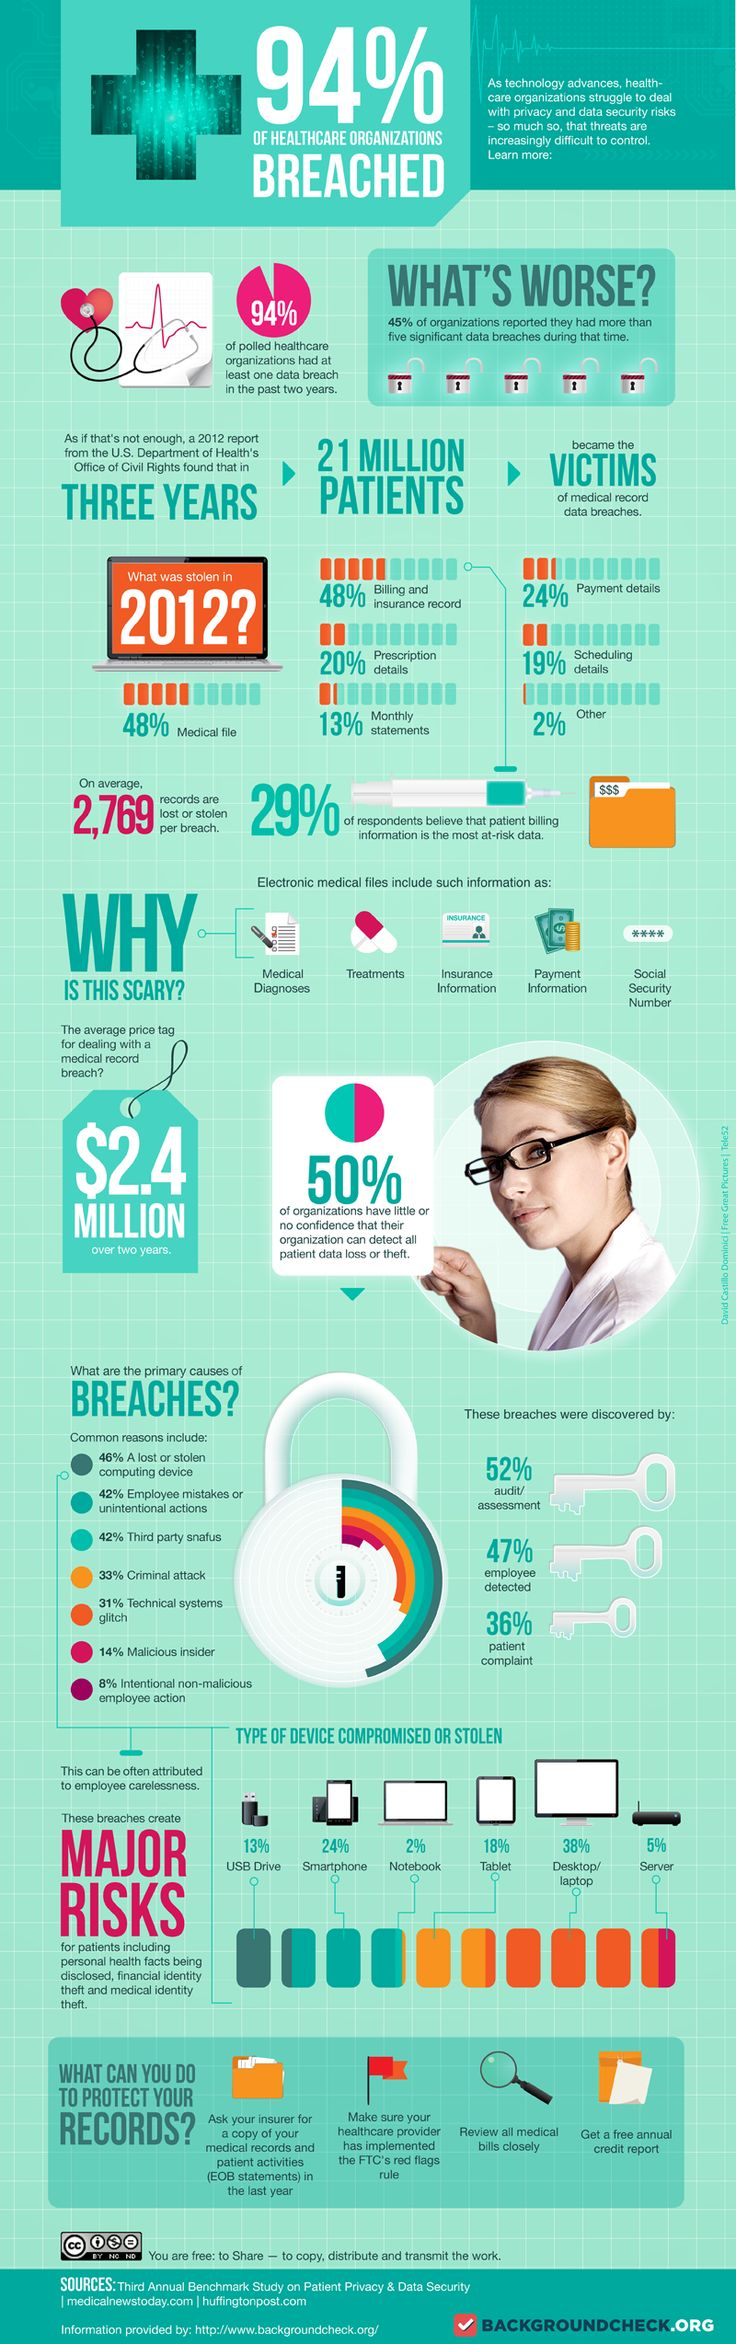 Security Breaches Cost Healthcare Organizations $2.4 M Over 2 Years Infographic